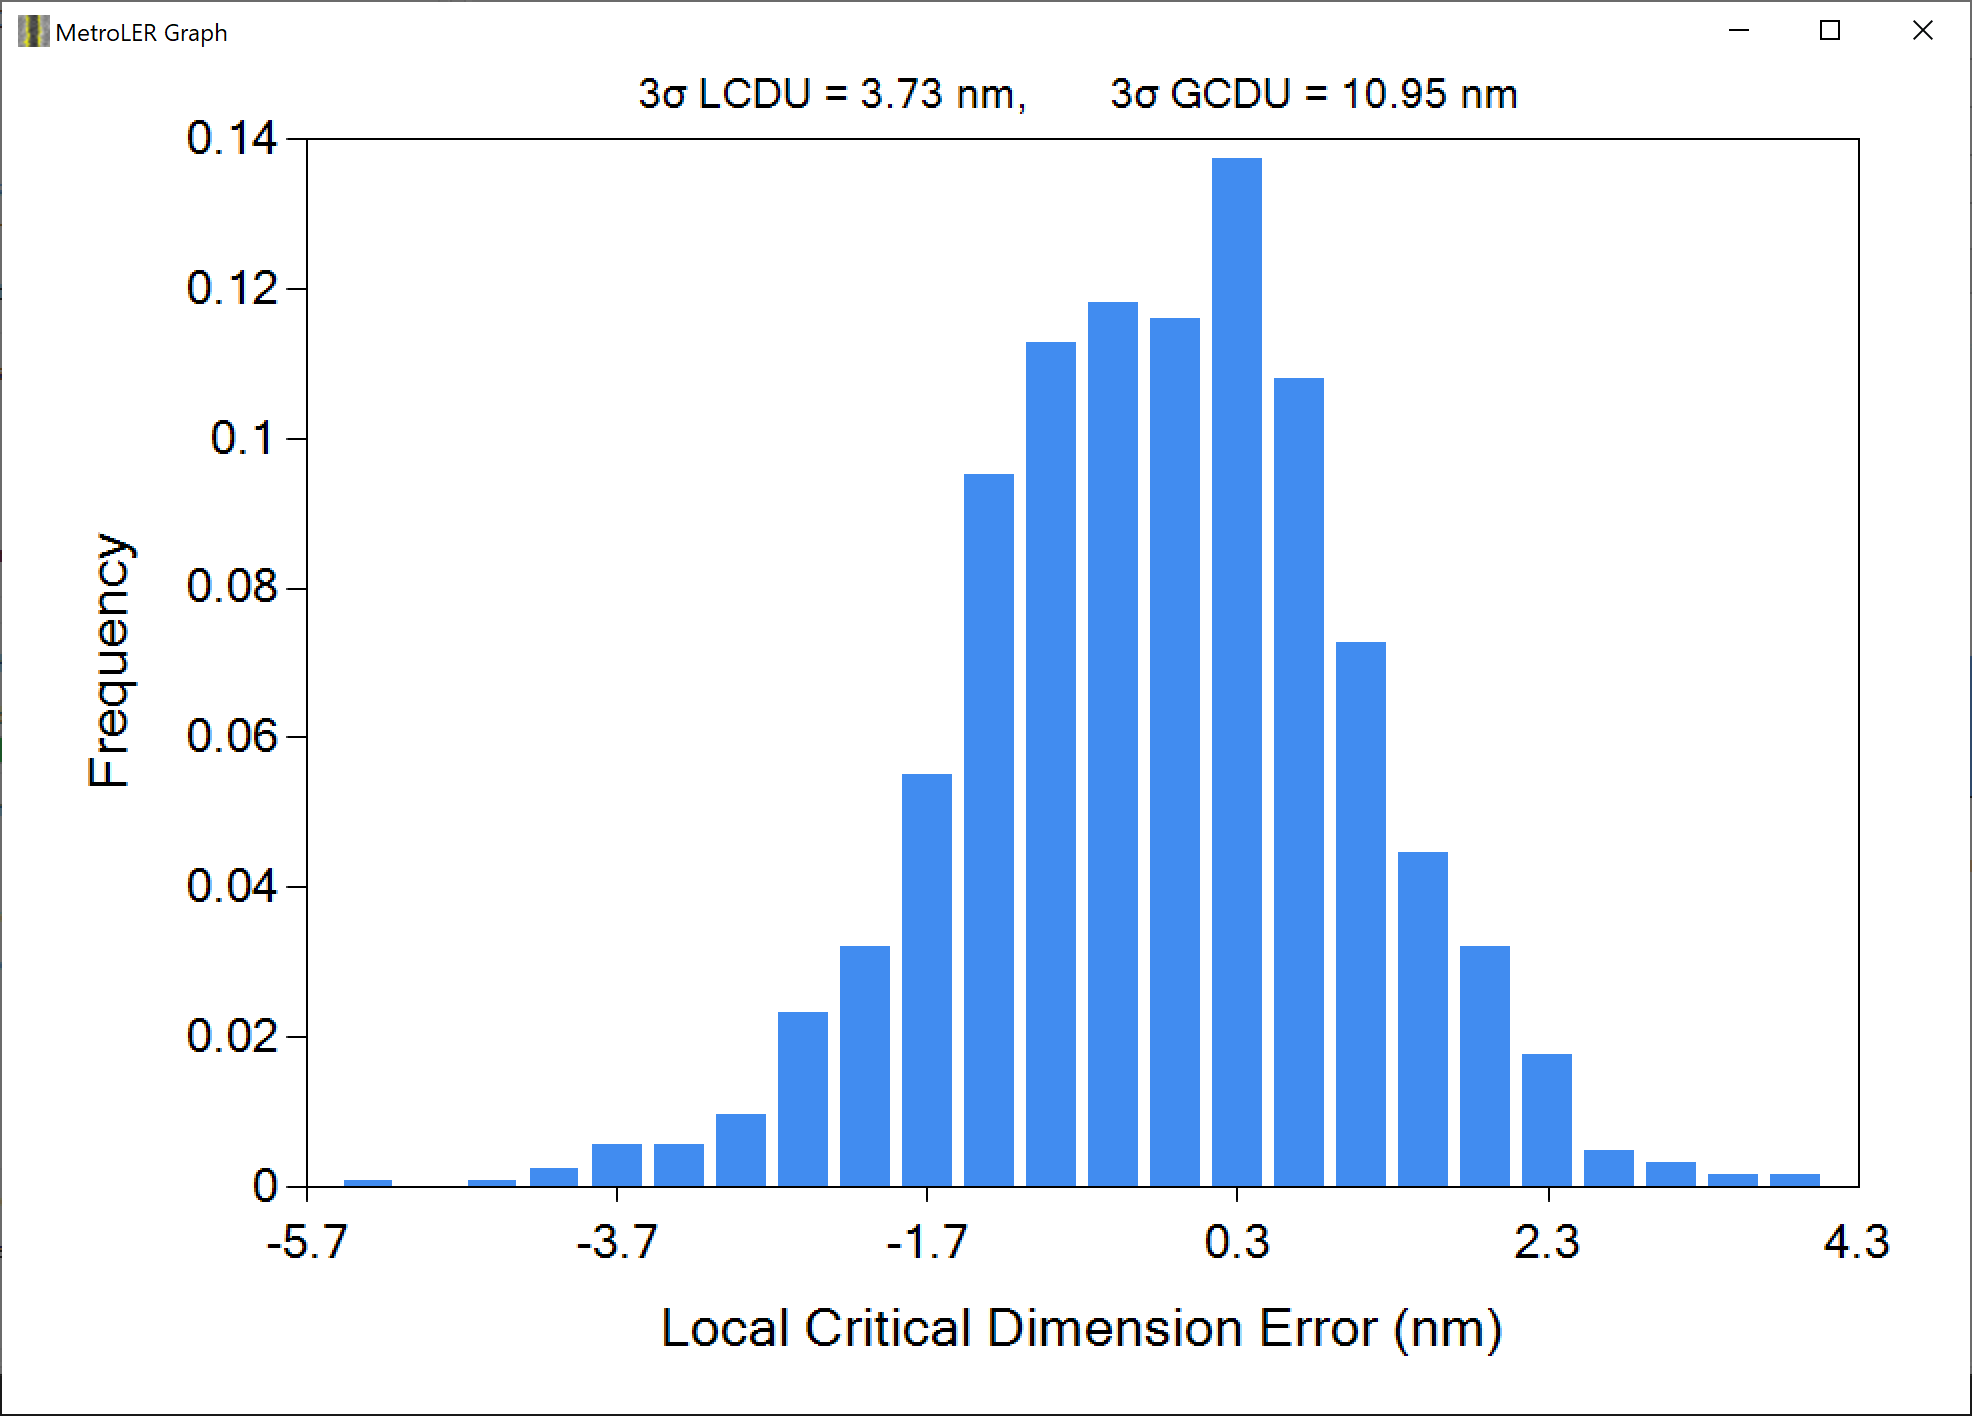 MetroLER calculates the LCDU and Global CDU of all distributions. (Investigation and all SEM images in collaboration with imec)